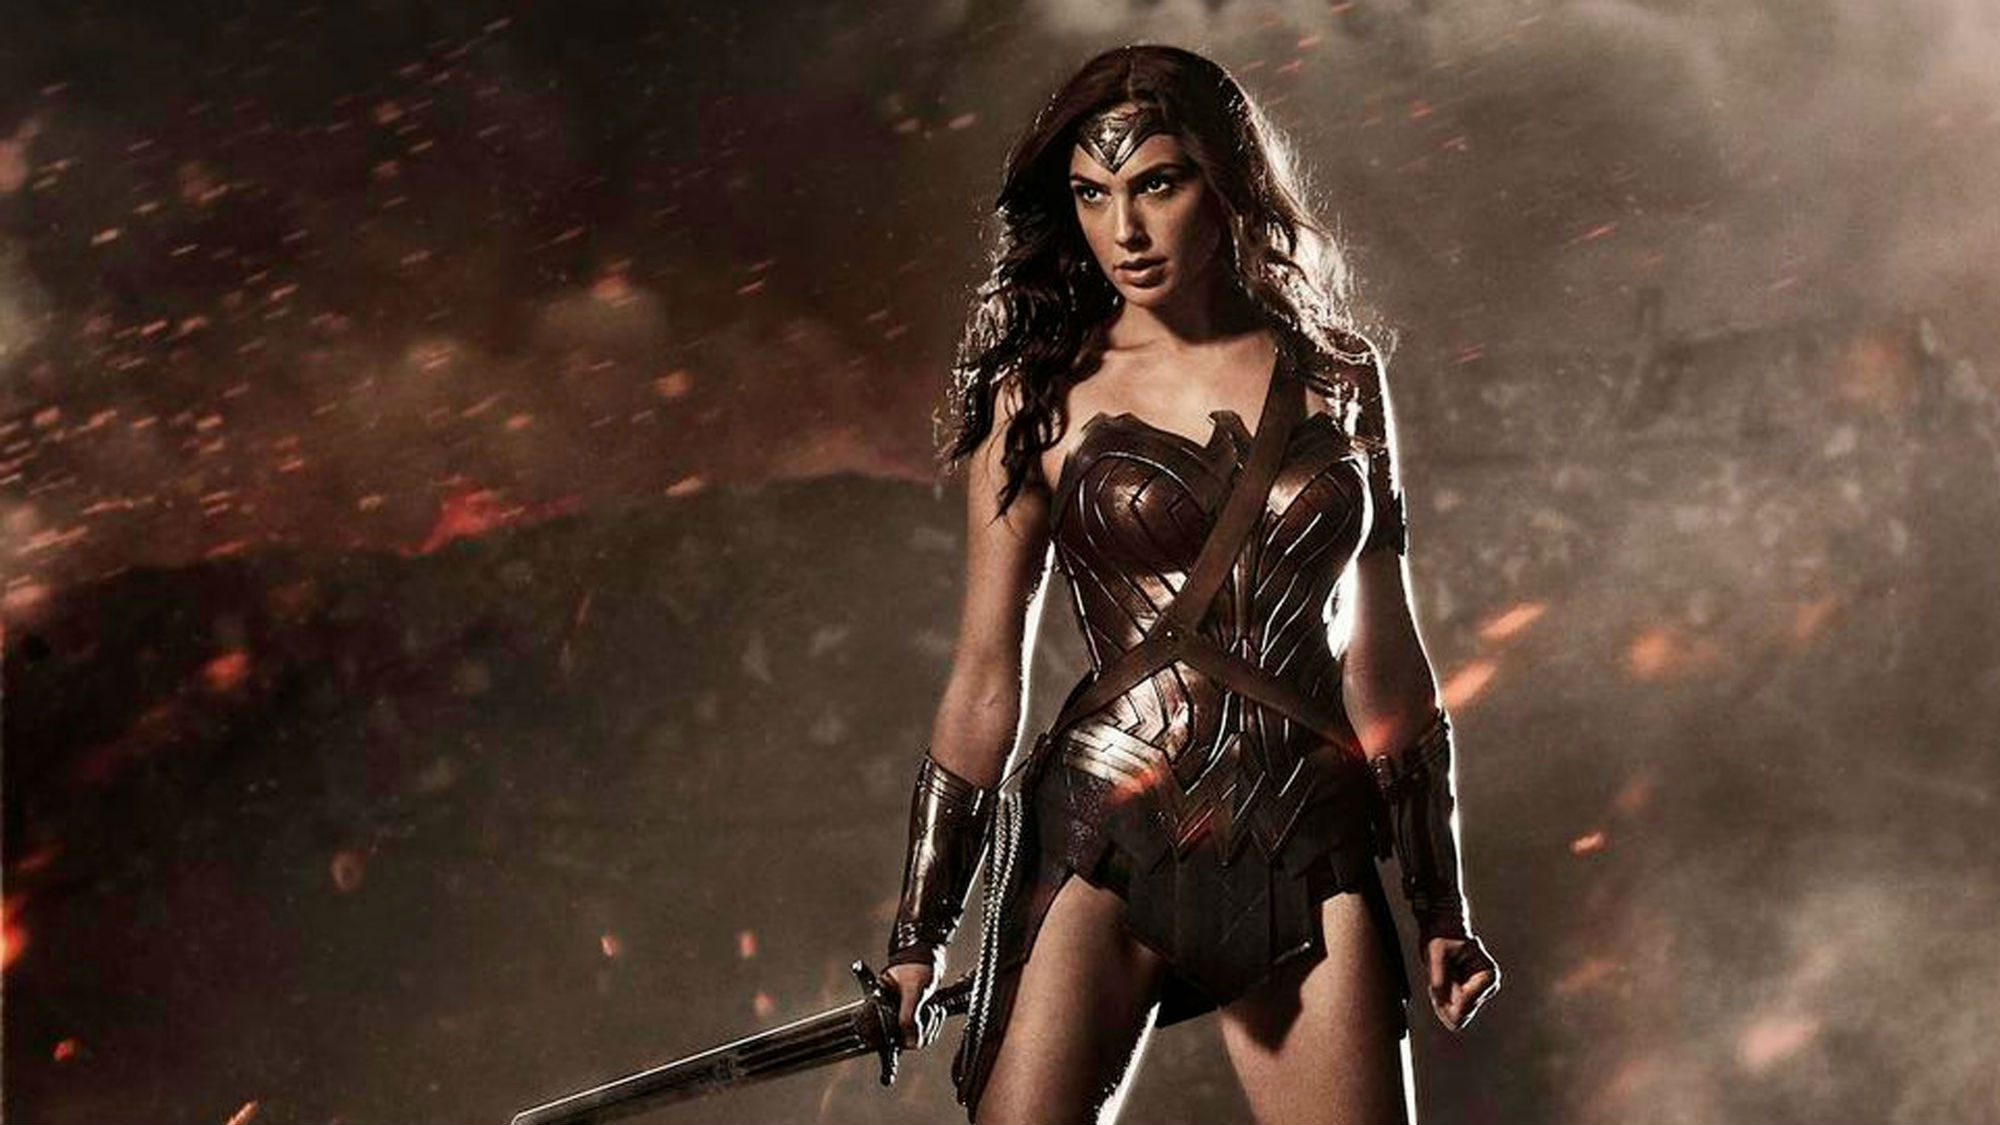 This blink-and-you-miss-it moment from Wonder Woman is going viral